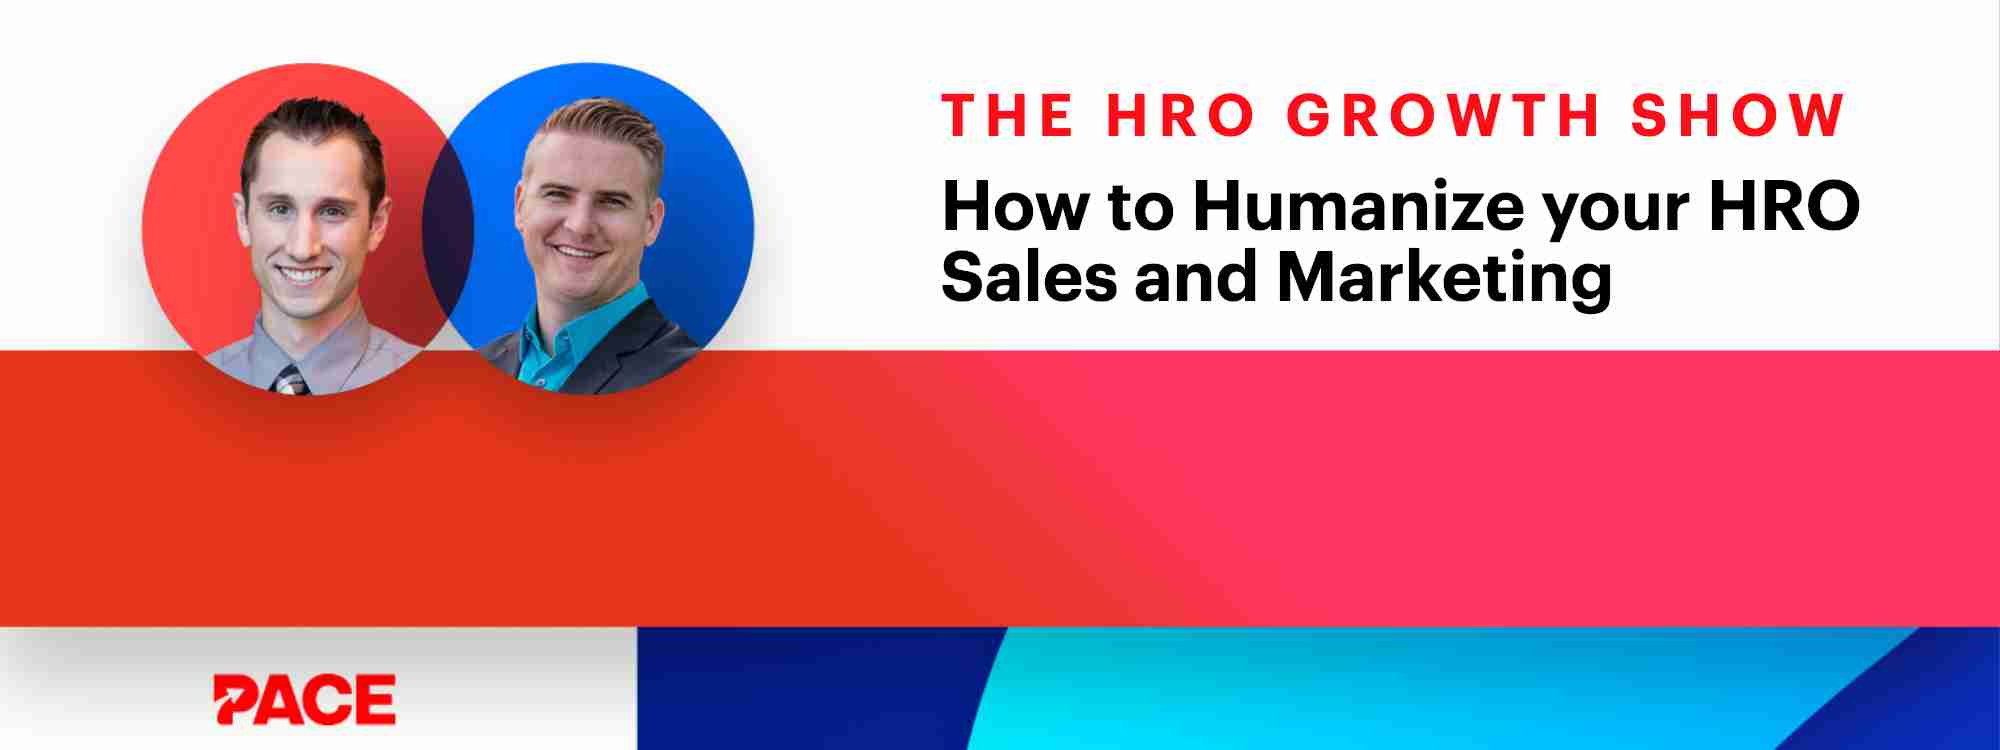 HRO Growth Show Episode 4: How to Humanize Your HRO Sales and Marketing for Maximum Growth